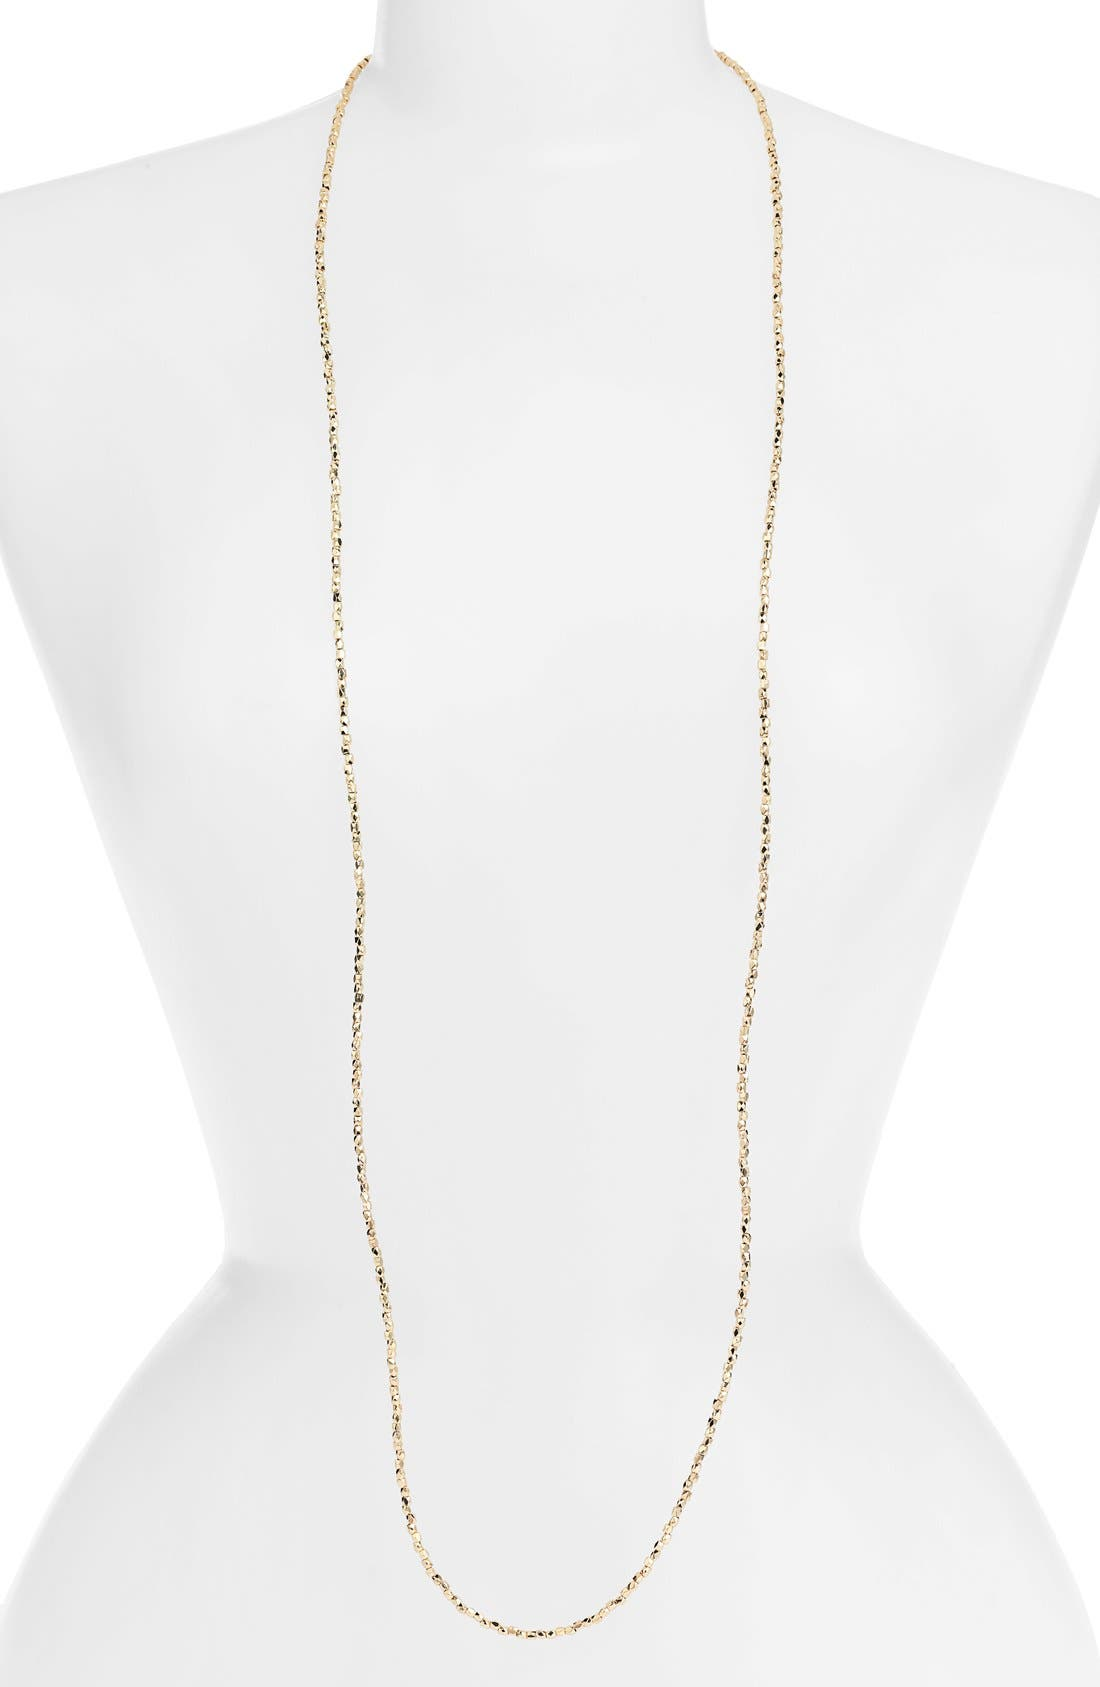 Alternate Image 2  - Nordstrom 'Layers of Love' Extra Long Bead Necklace